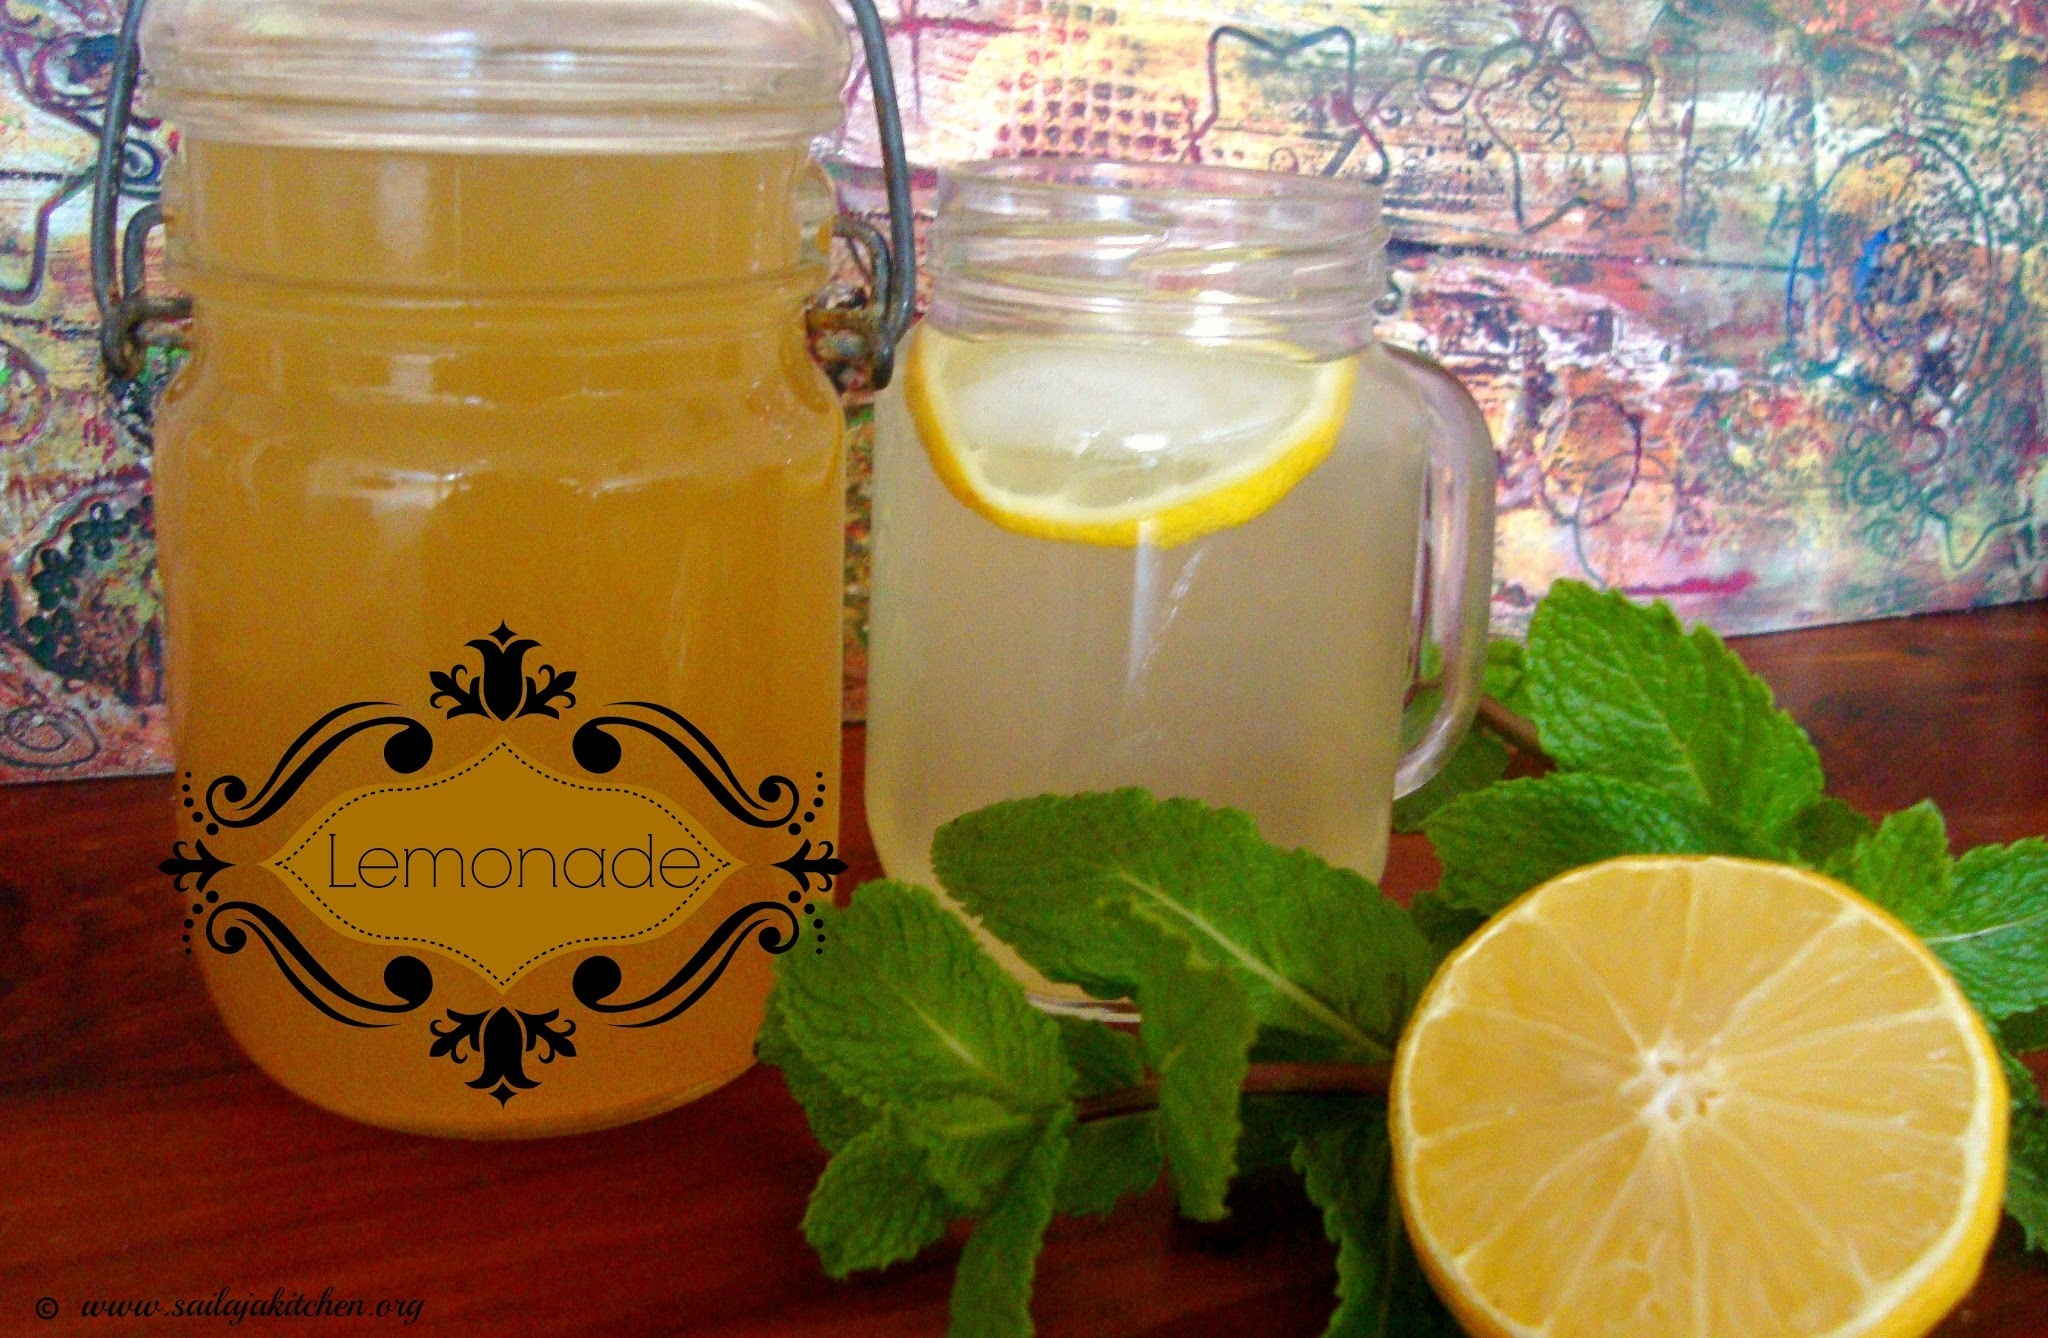 Lemonade Recipe / Homemade Lemonade Recipe / Lemonade Indian Style / Homemade Lemonade Recipe / Homemade Lemon Syrup